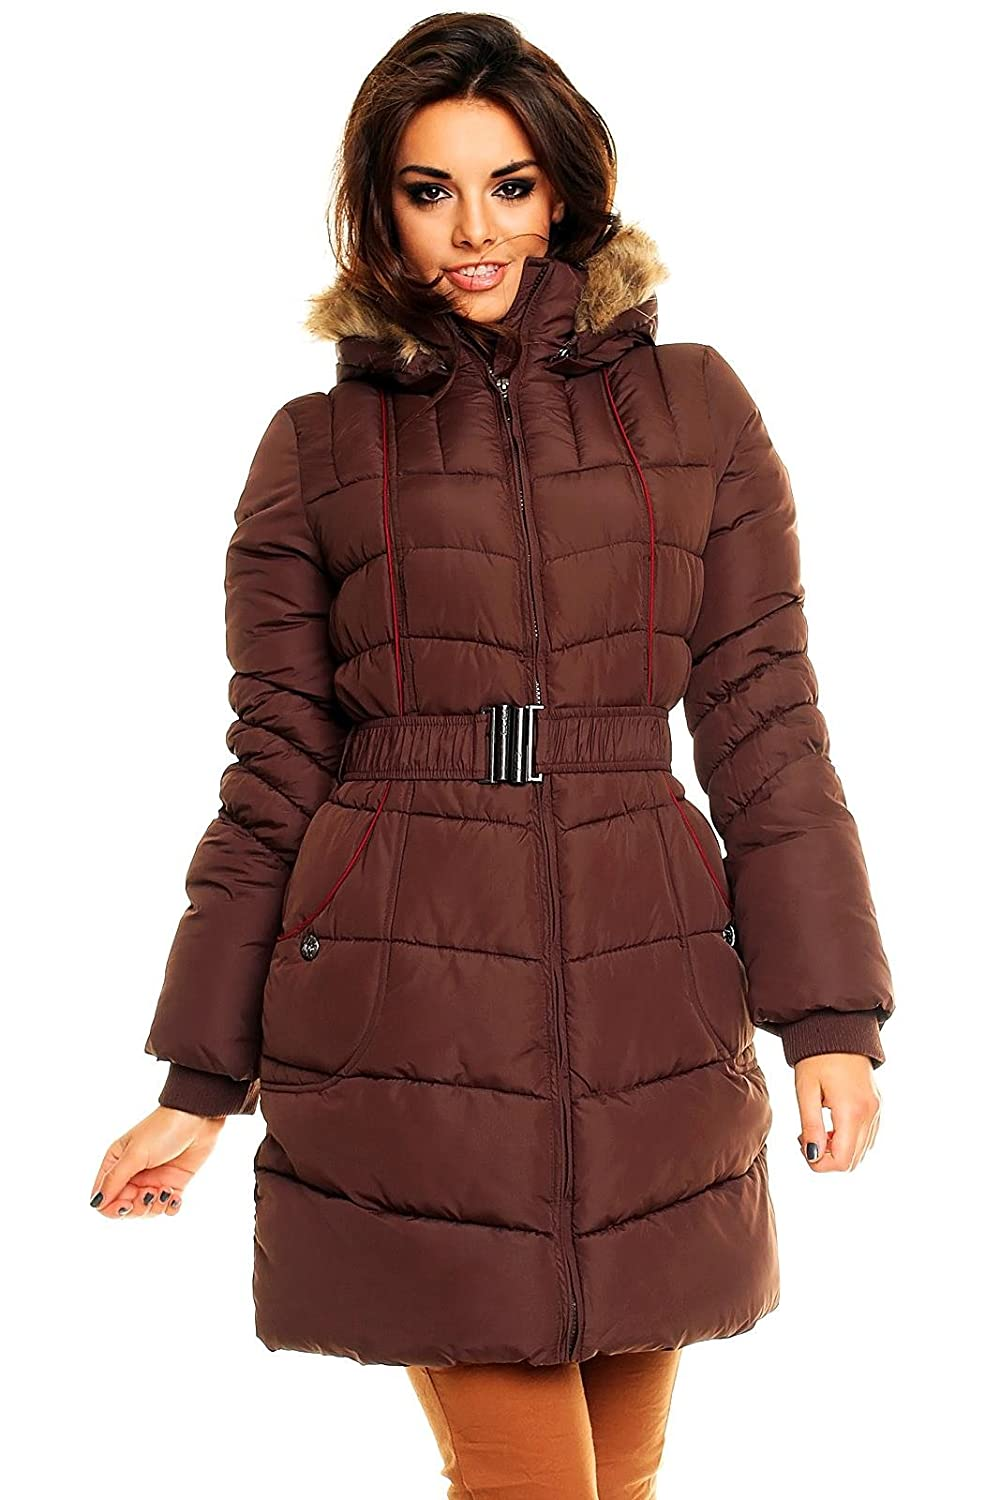 Fresh Made Steppmantel Mantel Wintermantel Steppjacke mit FellKapuze XL (40) Bean Brown